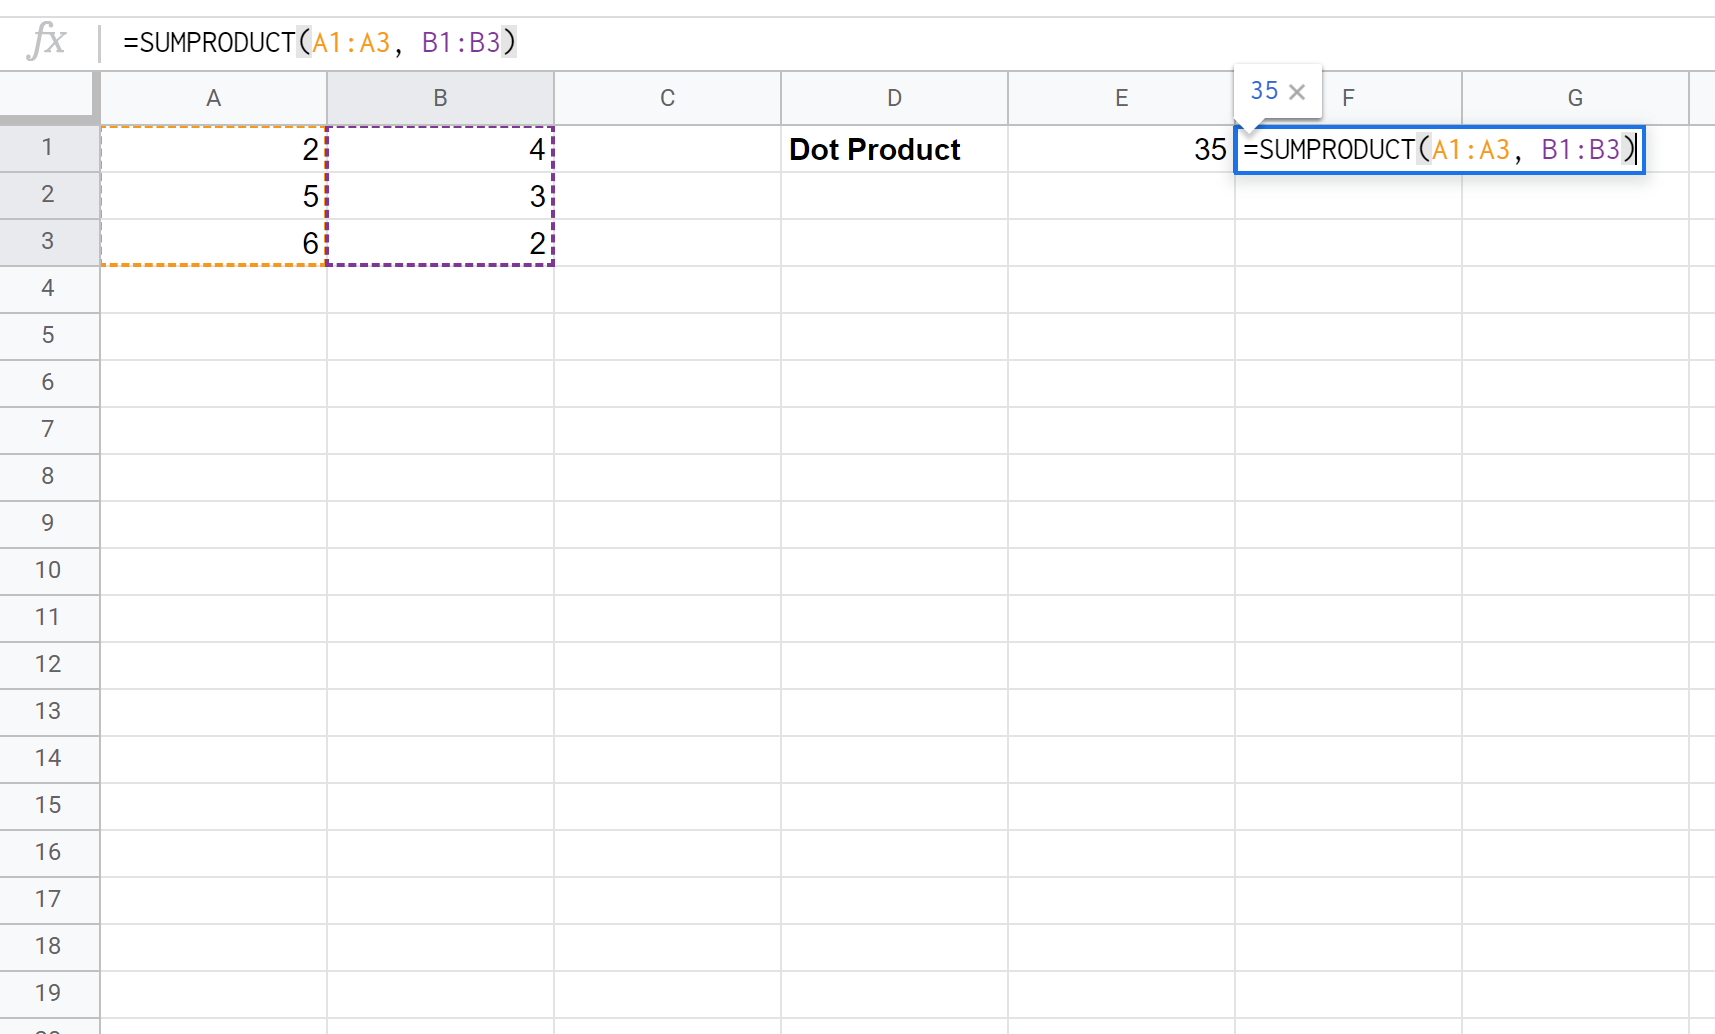 Dot product in Google Sheets